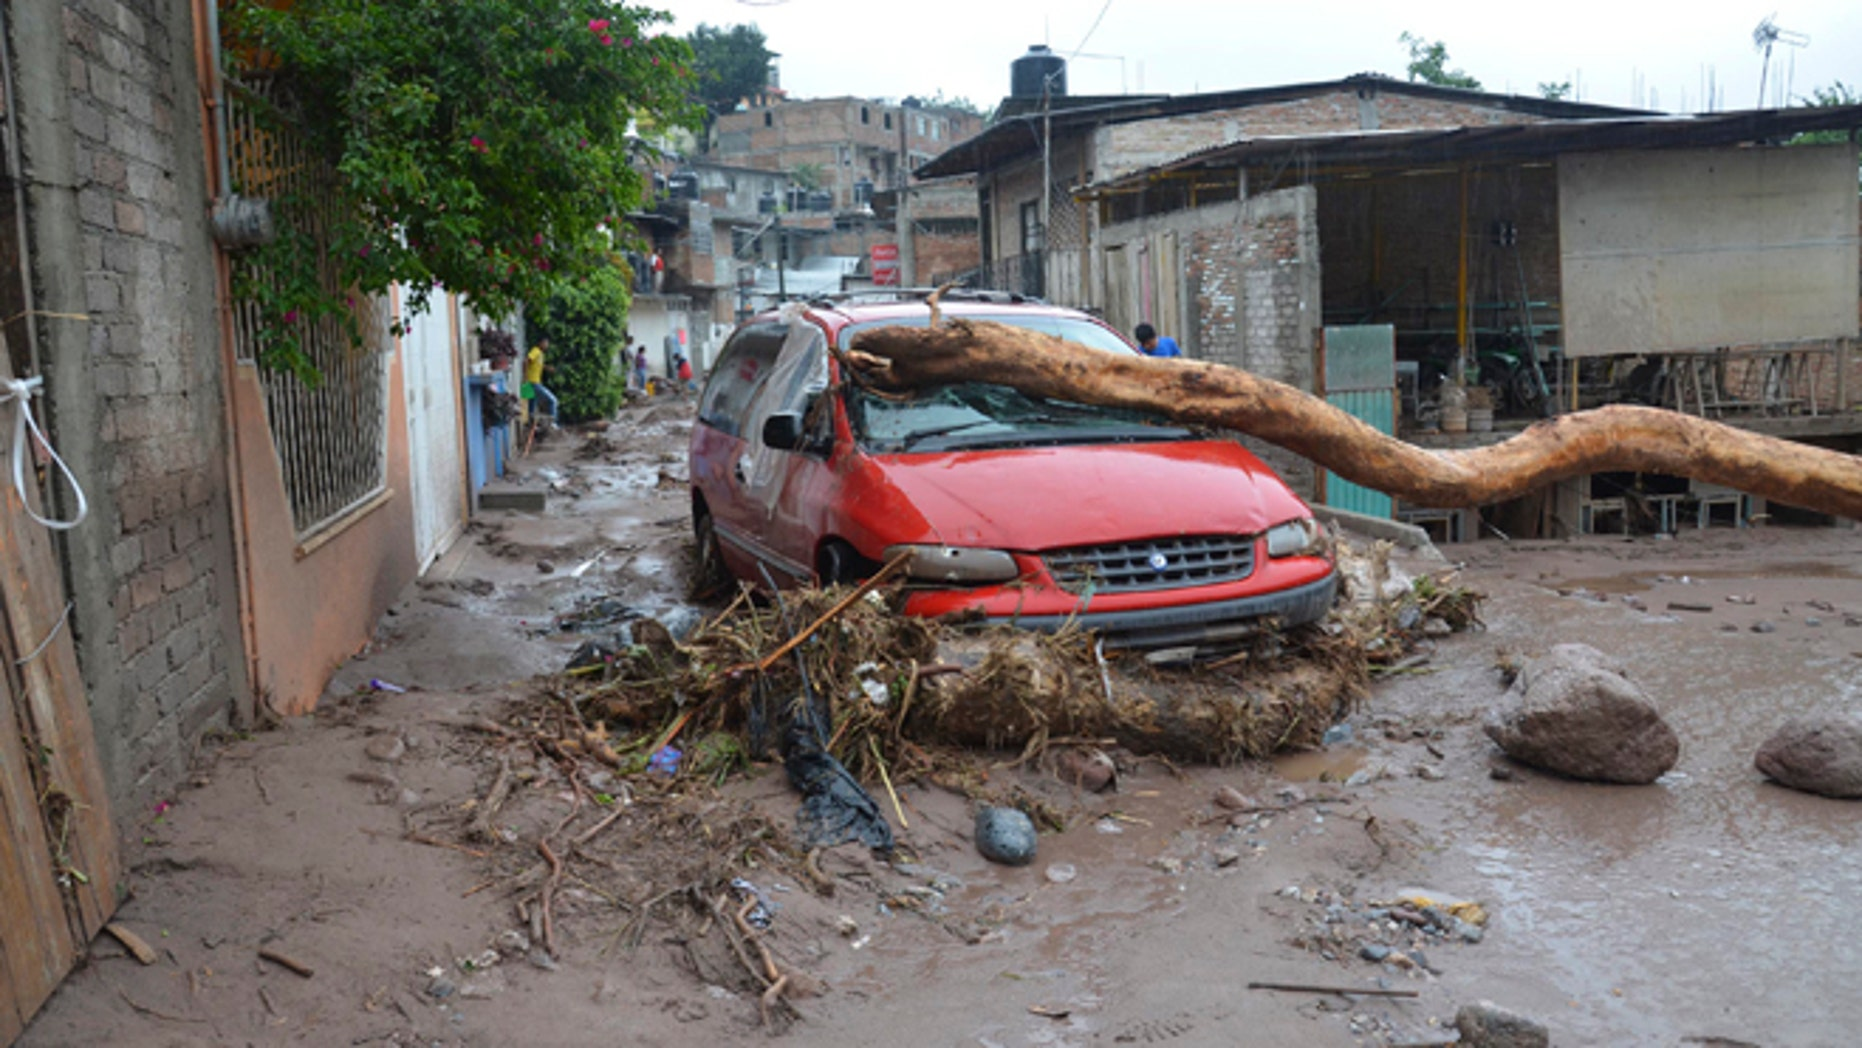 Sept. 16, 2013: A damaged vehicle stands in the middle of a road after a landslide caused by heavy rains came down on a low income neighborhood in the city of Chilpancingo, Mexico.